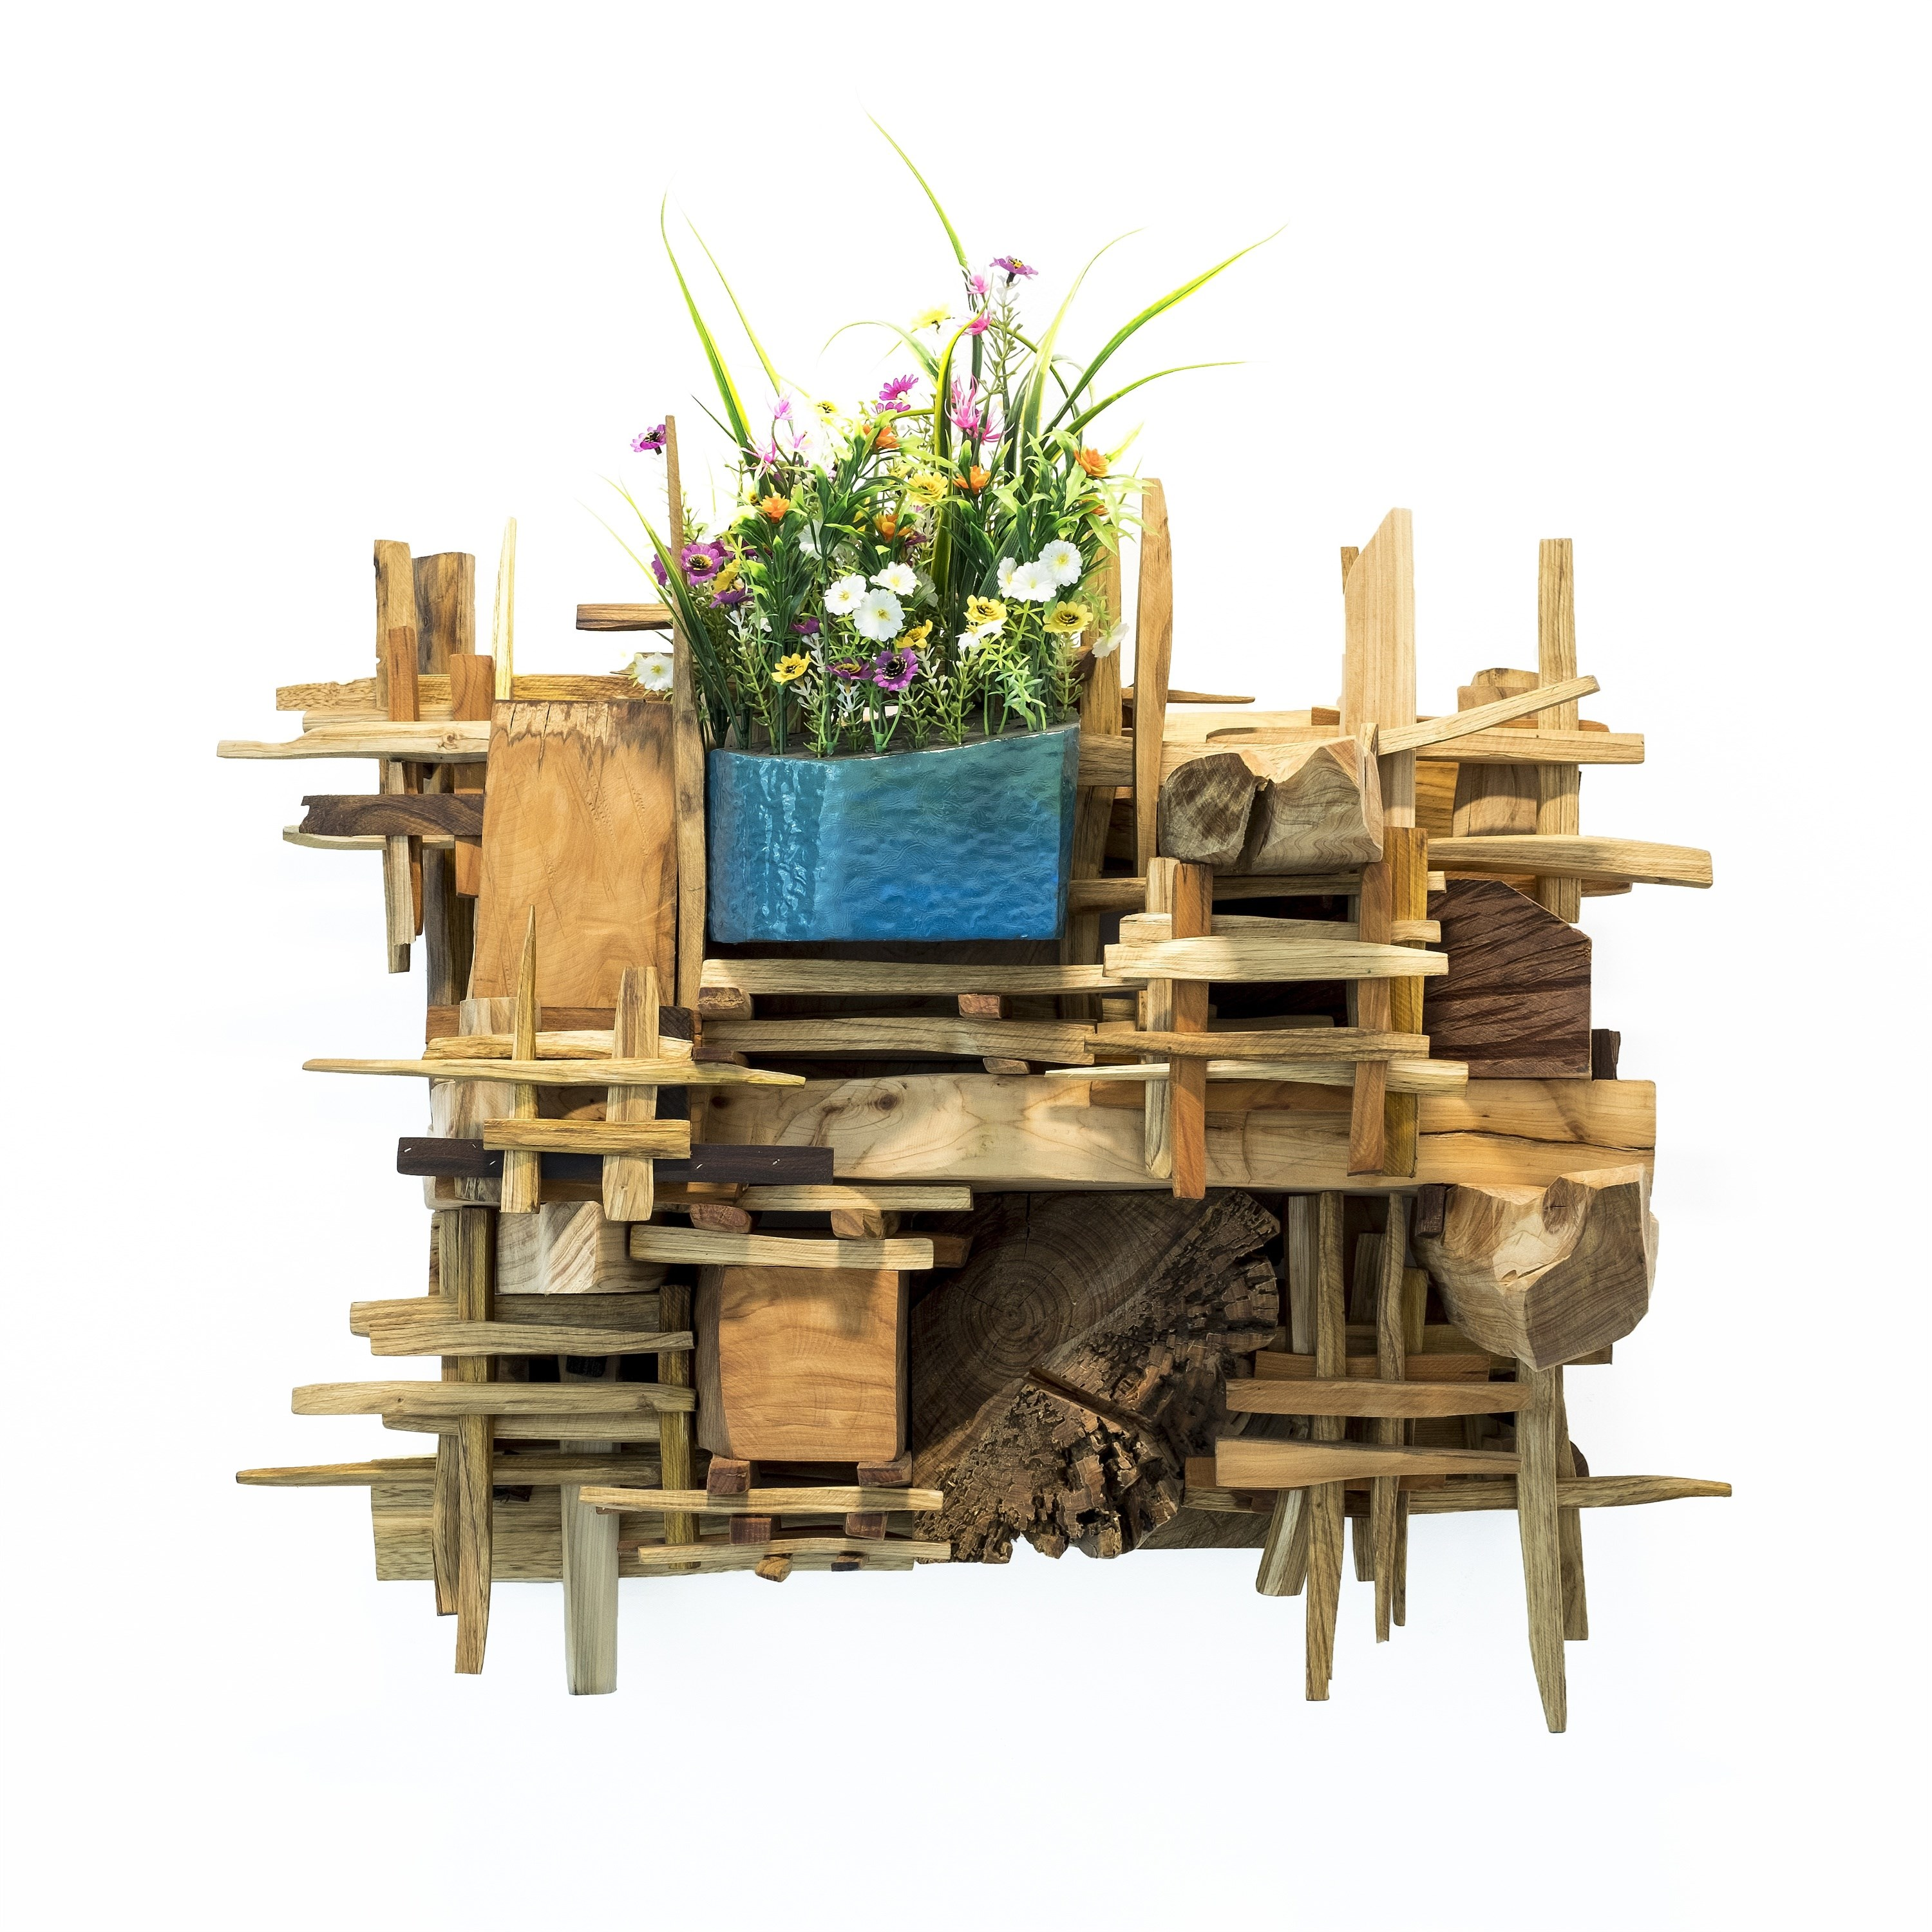 Florir no Imenso Solo I, original Nature Wood Sculpture by Miguel  Neves Oliveira